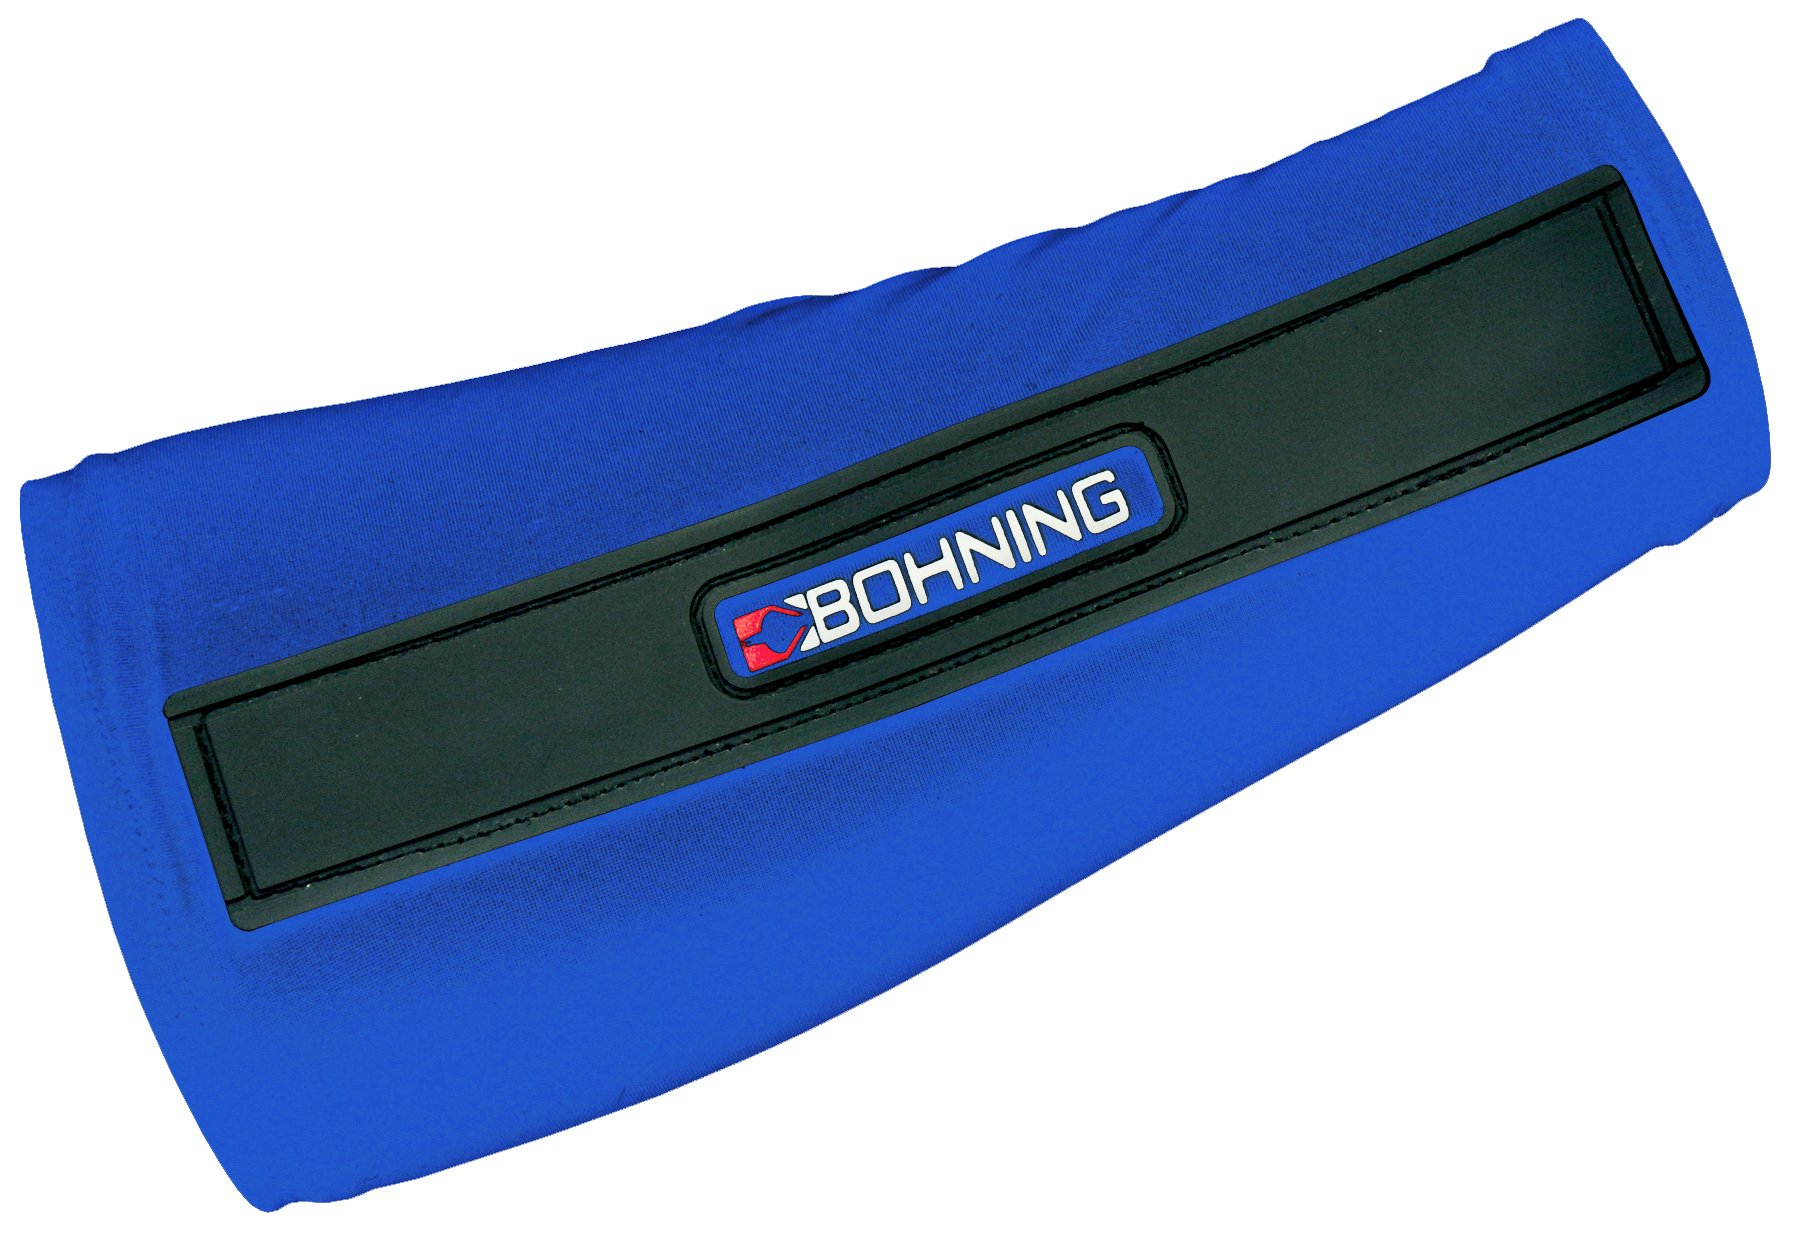 Bohning Archery Slip-On Armguard Small, Blue